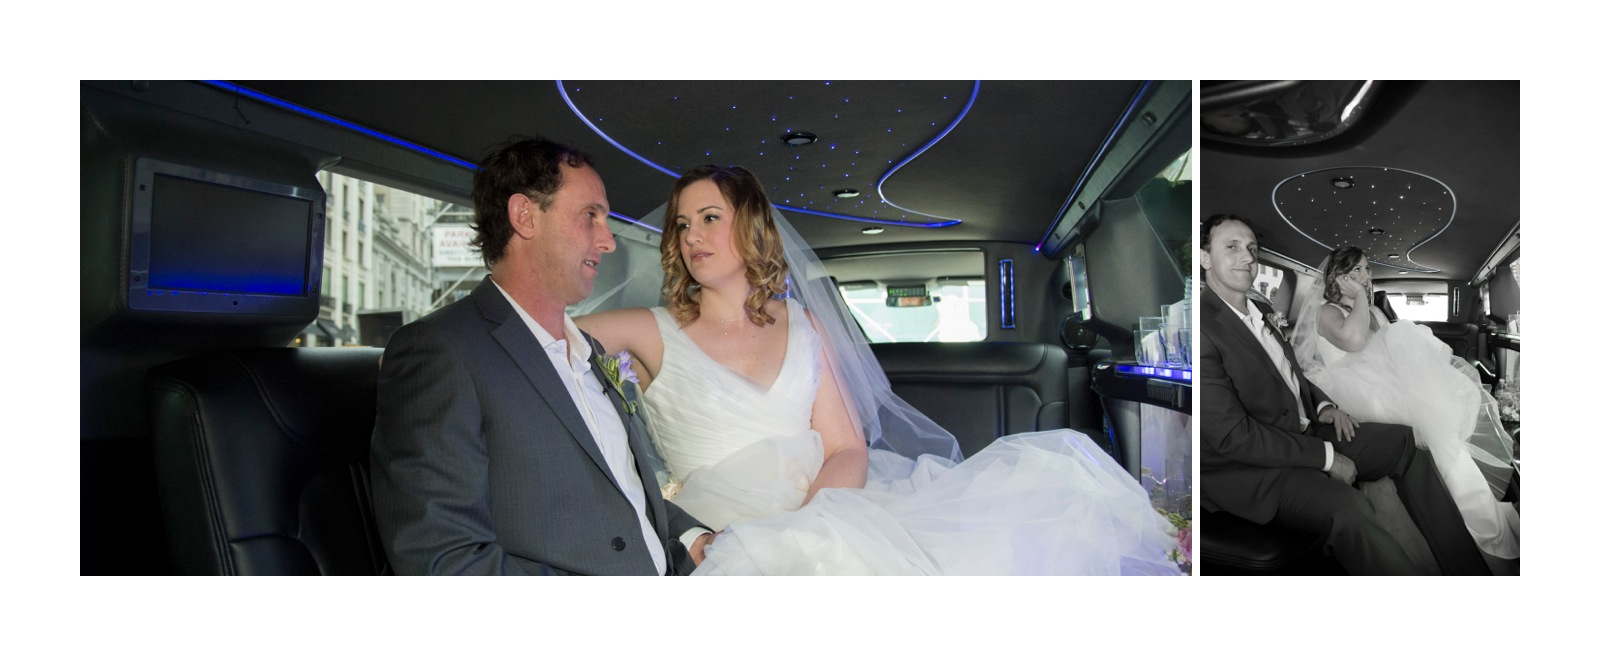 The first look was in the Limo